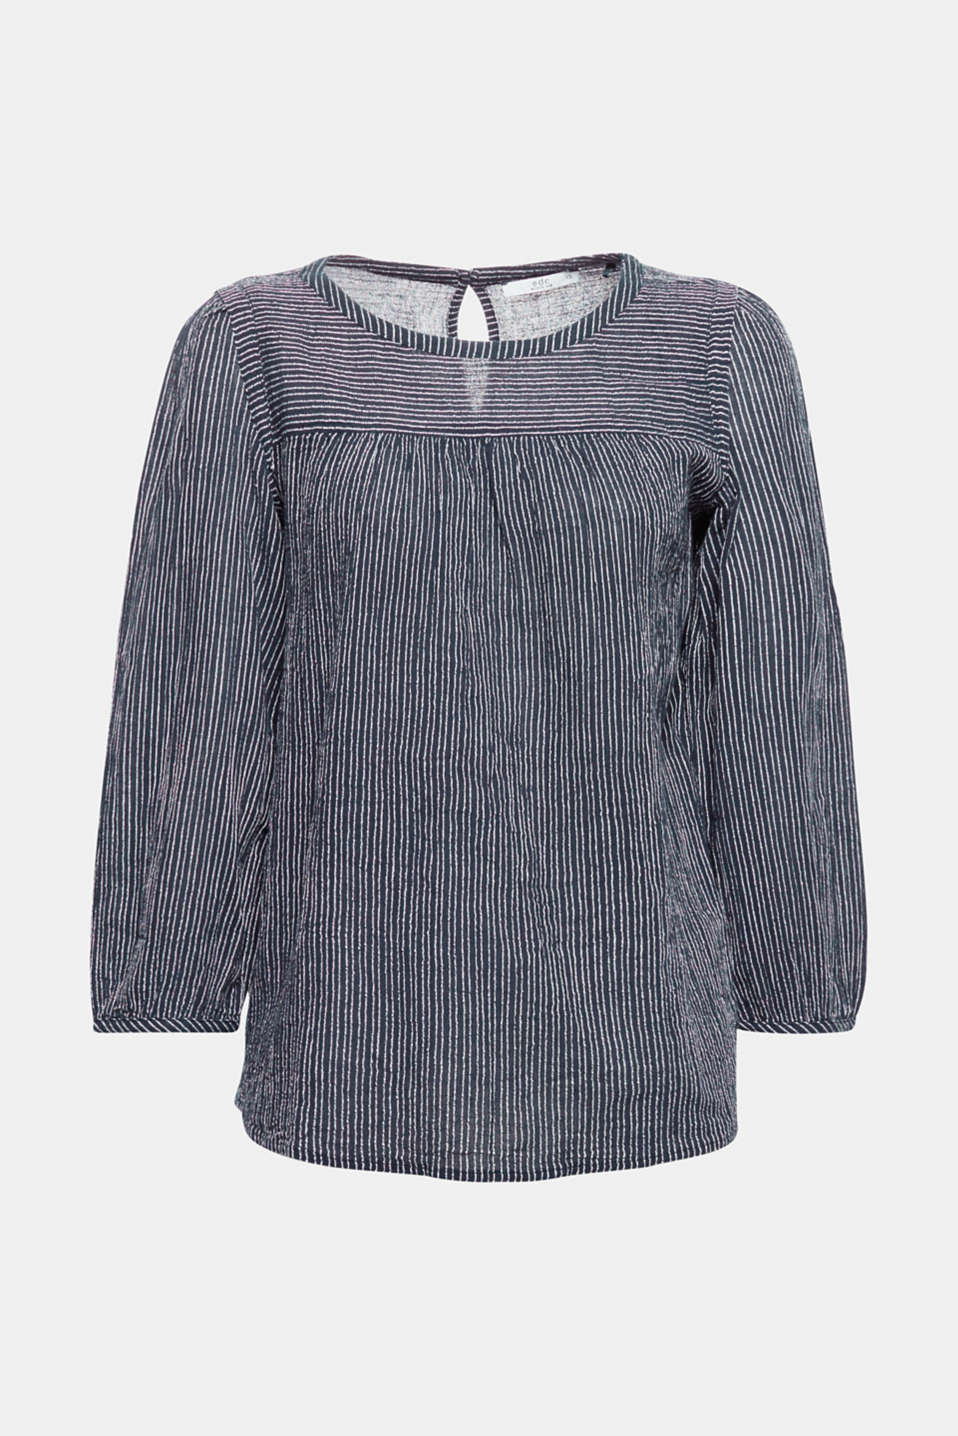 Fine textured stripes make this piece easier to iron and create cool comfort when wearing! The yoke on the front, narrow frills on the shoulders and mock balloon sleeves create a romantic flair.